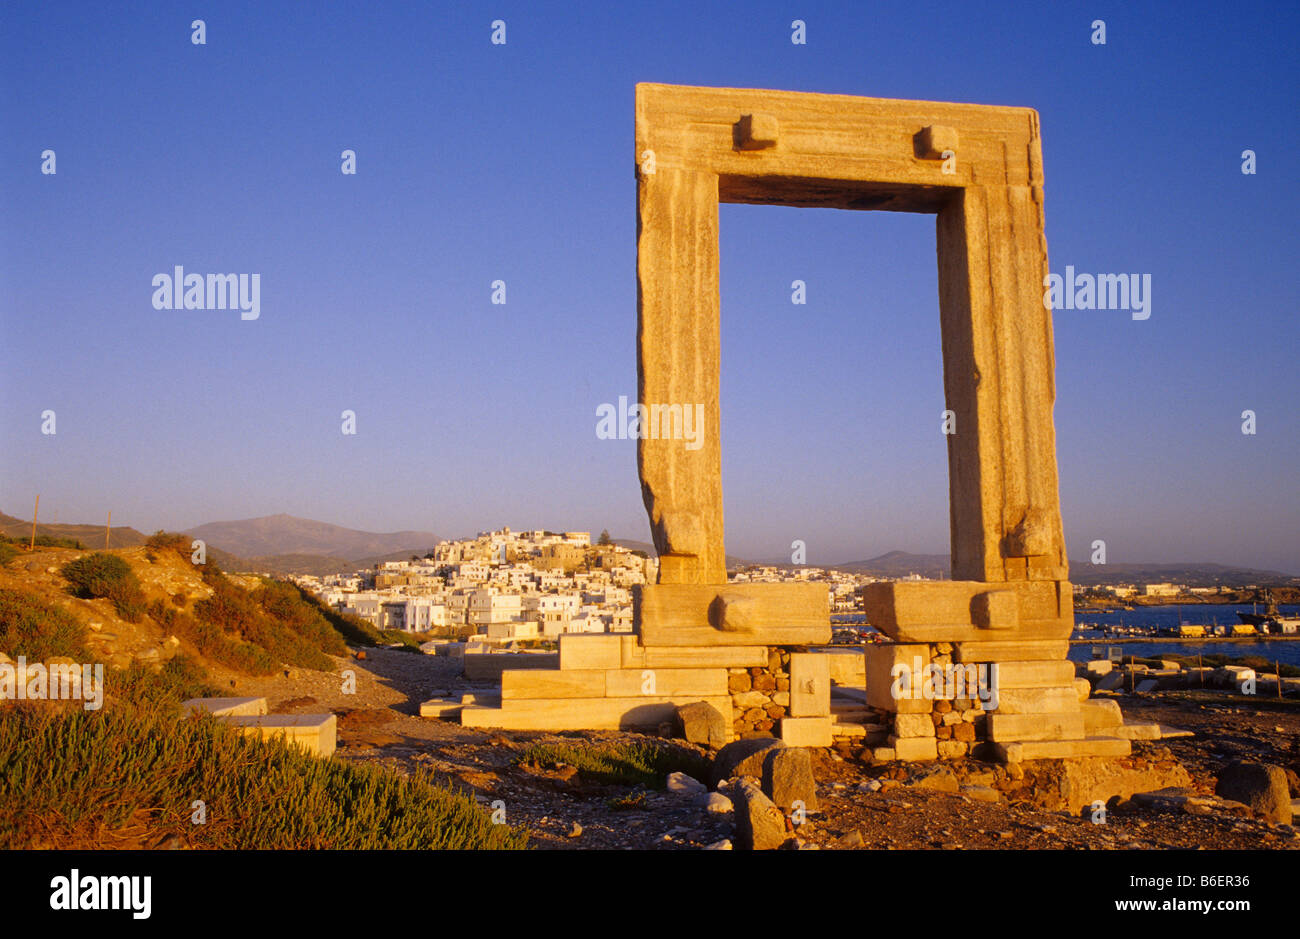 Portara, marble gate of Naxos City, Naxos Island, Greece, Europe - Stock Image